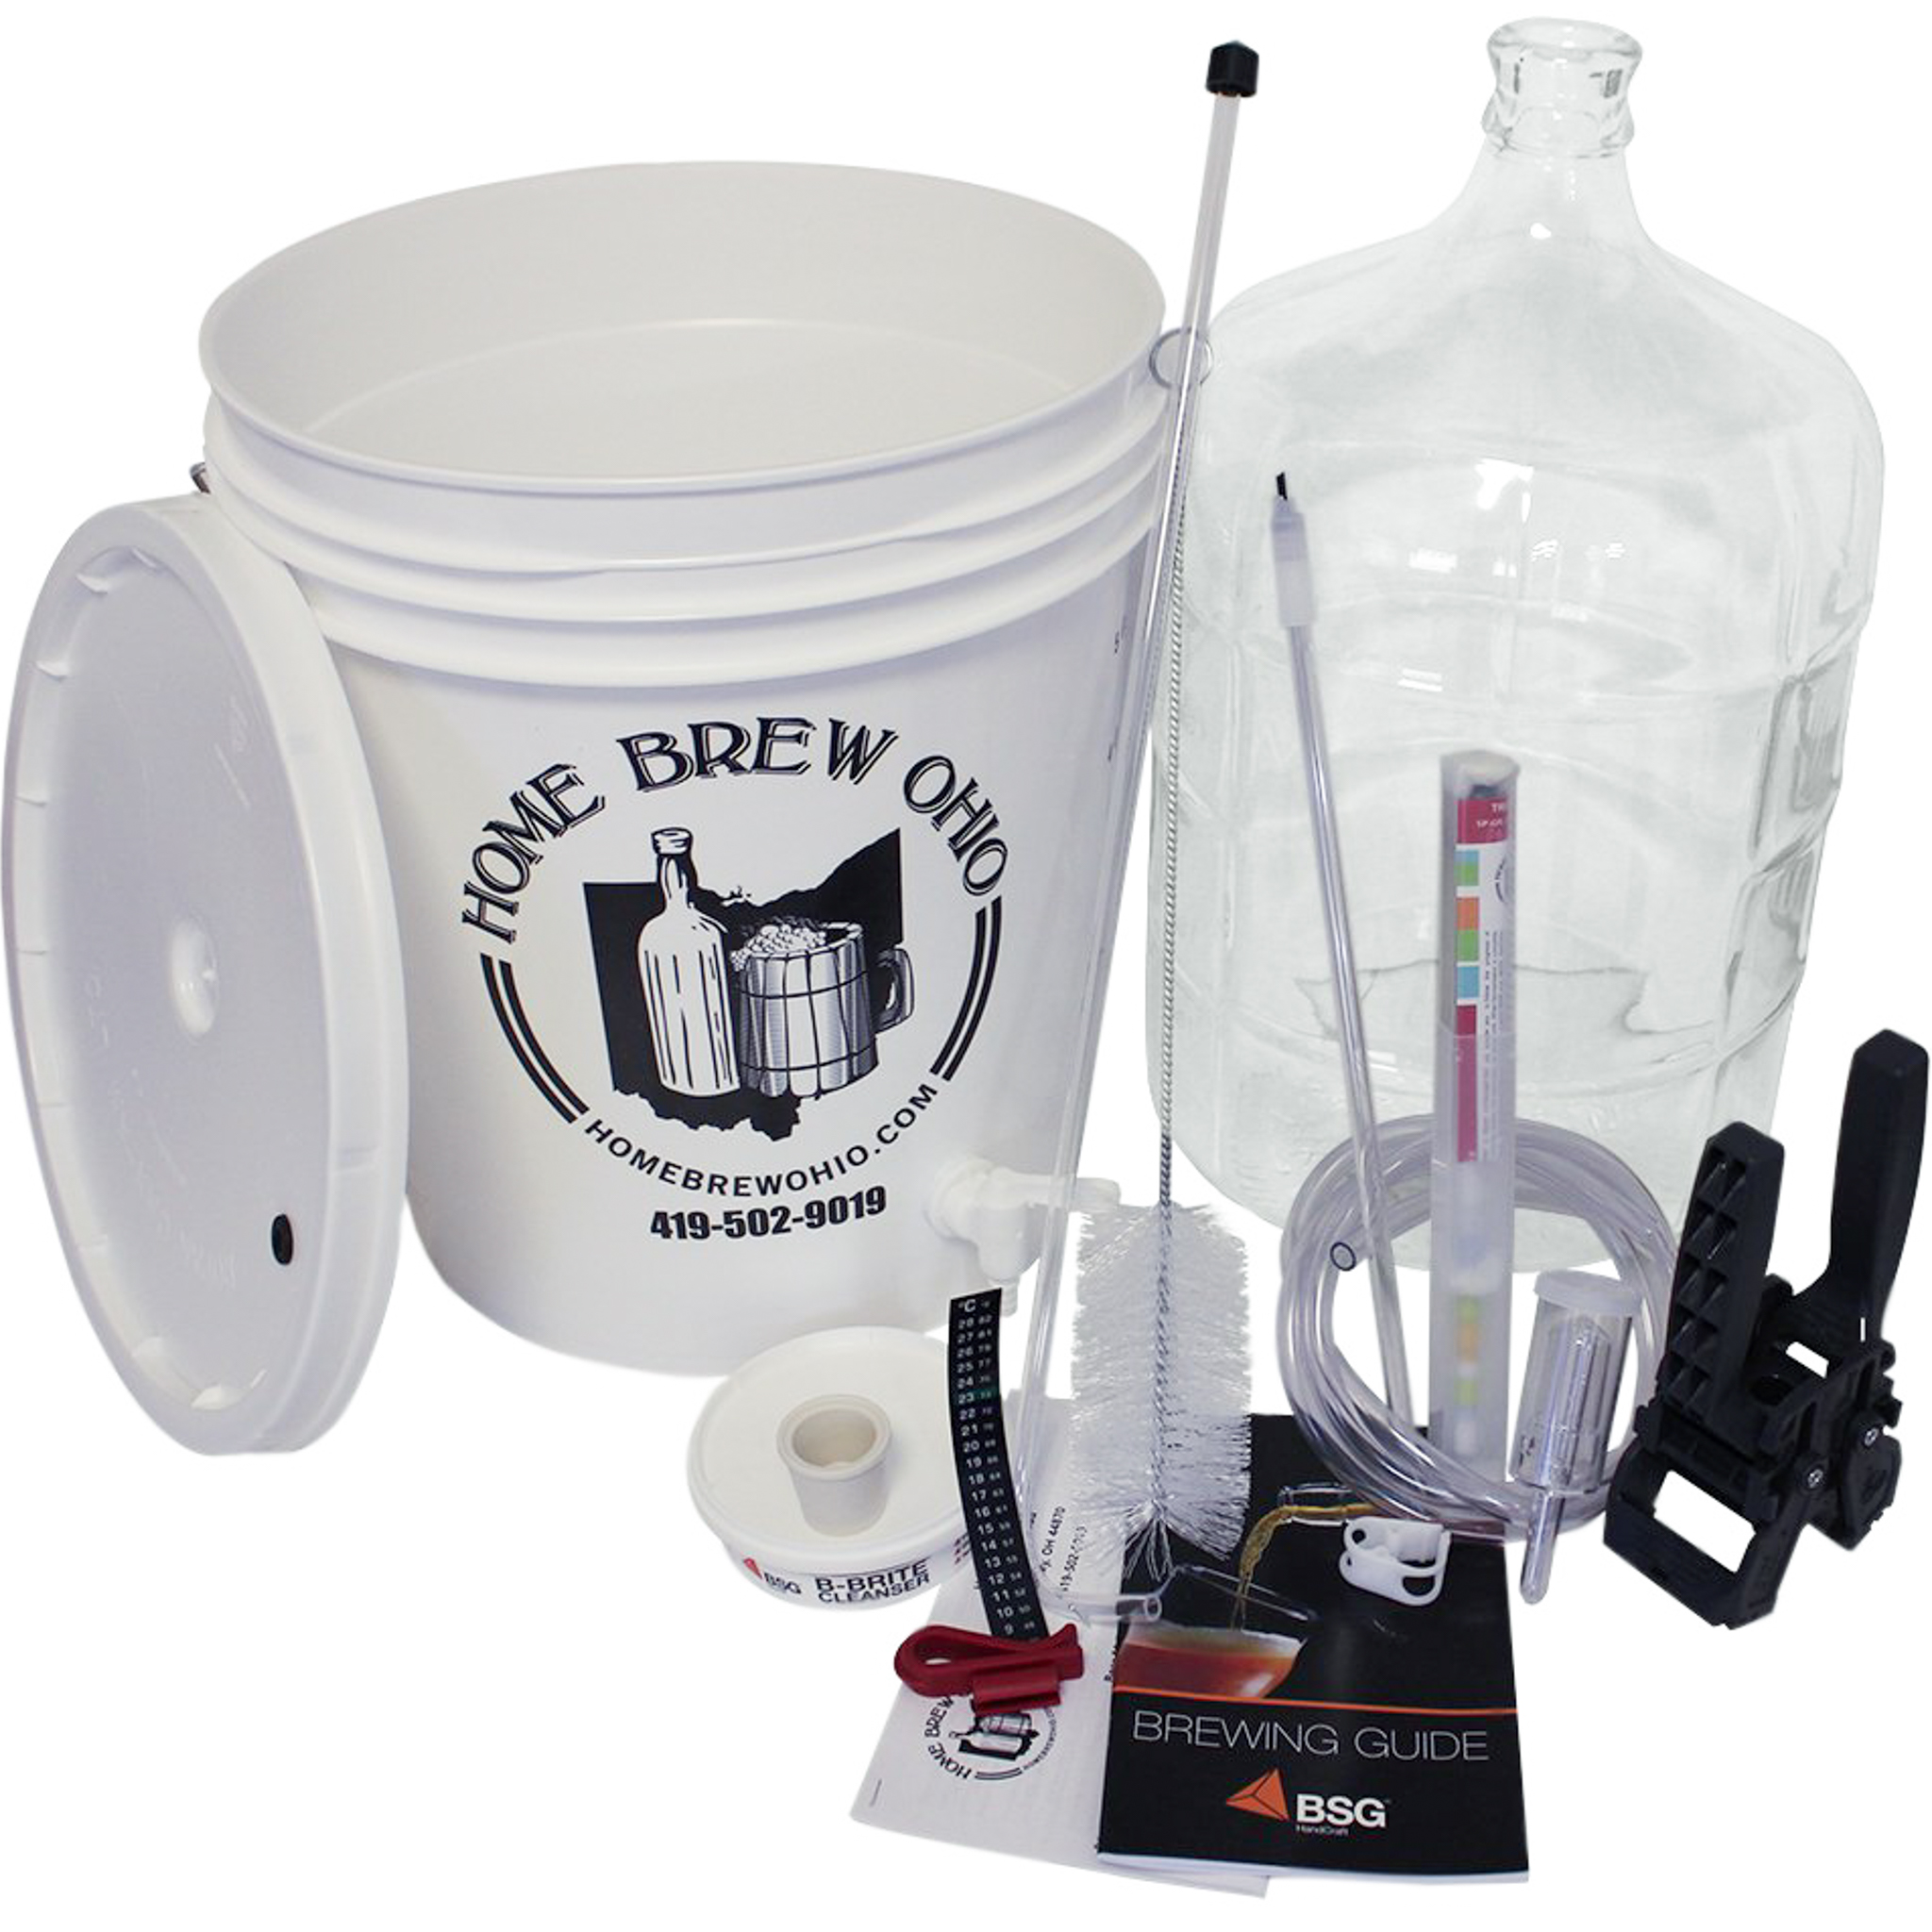 Home Brew Ohio kit